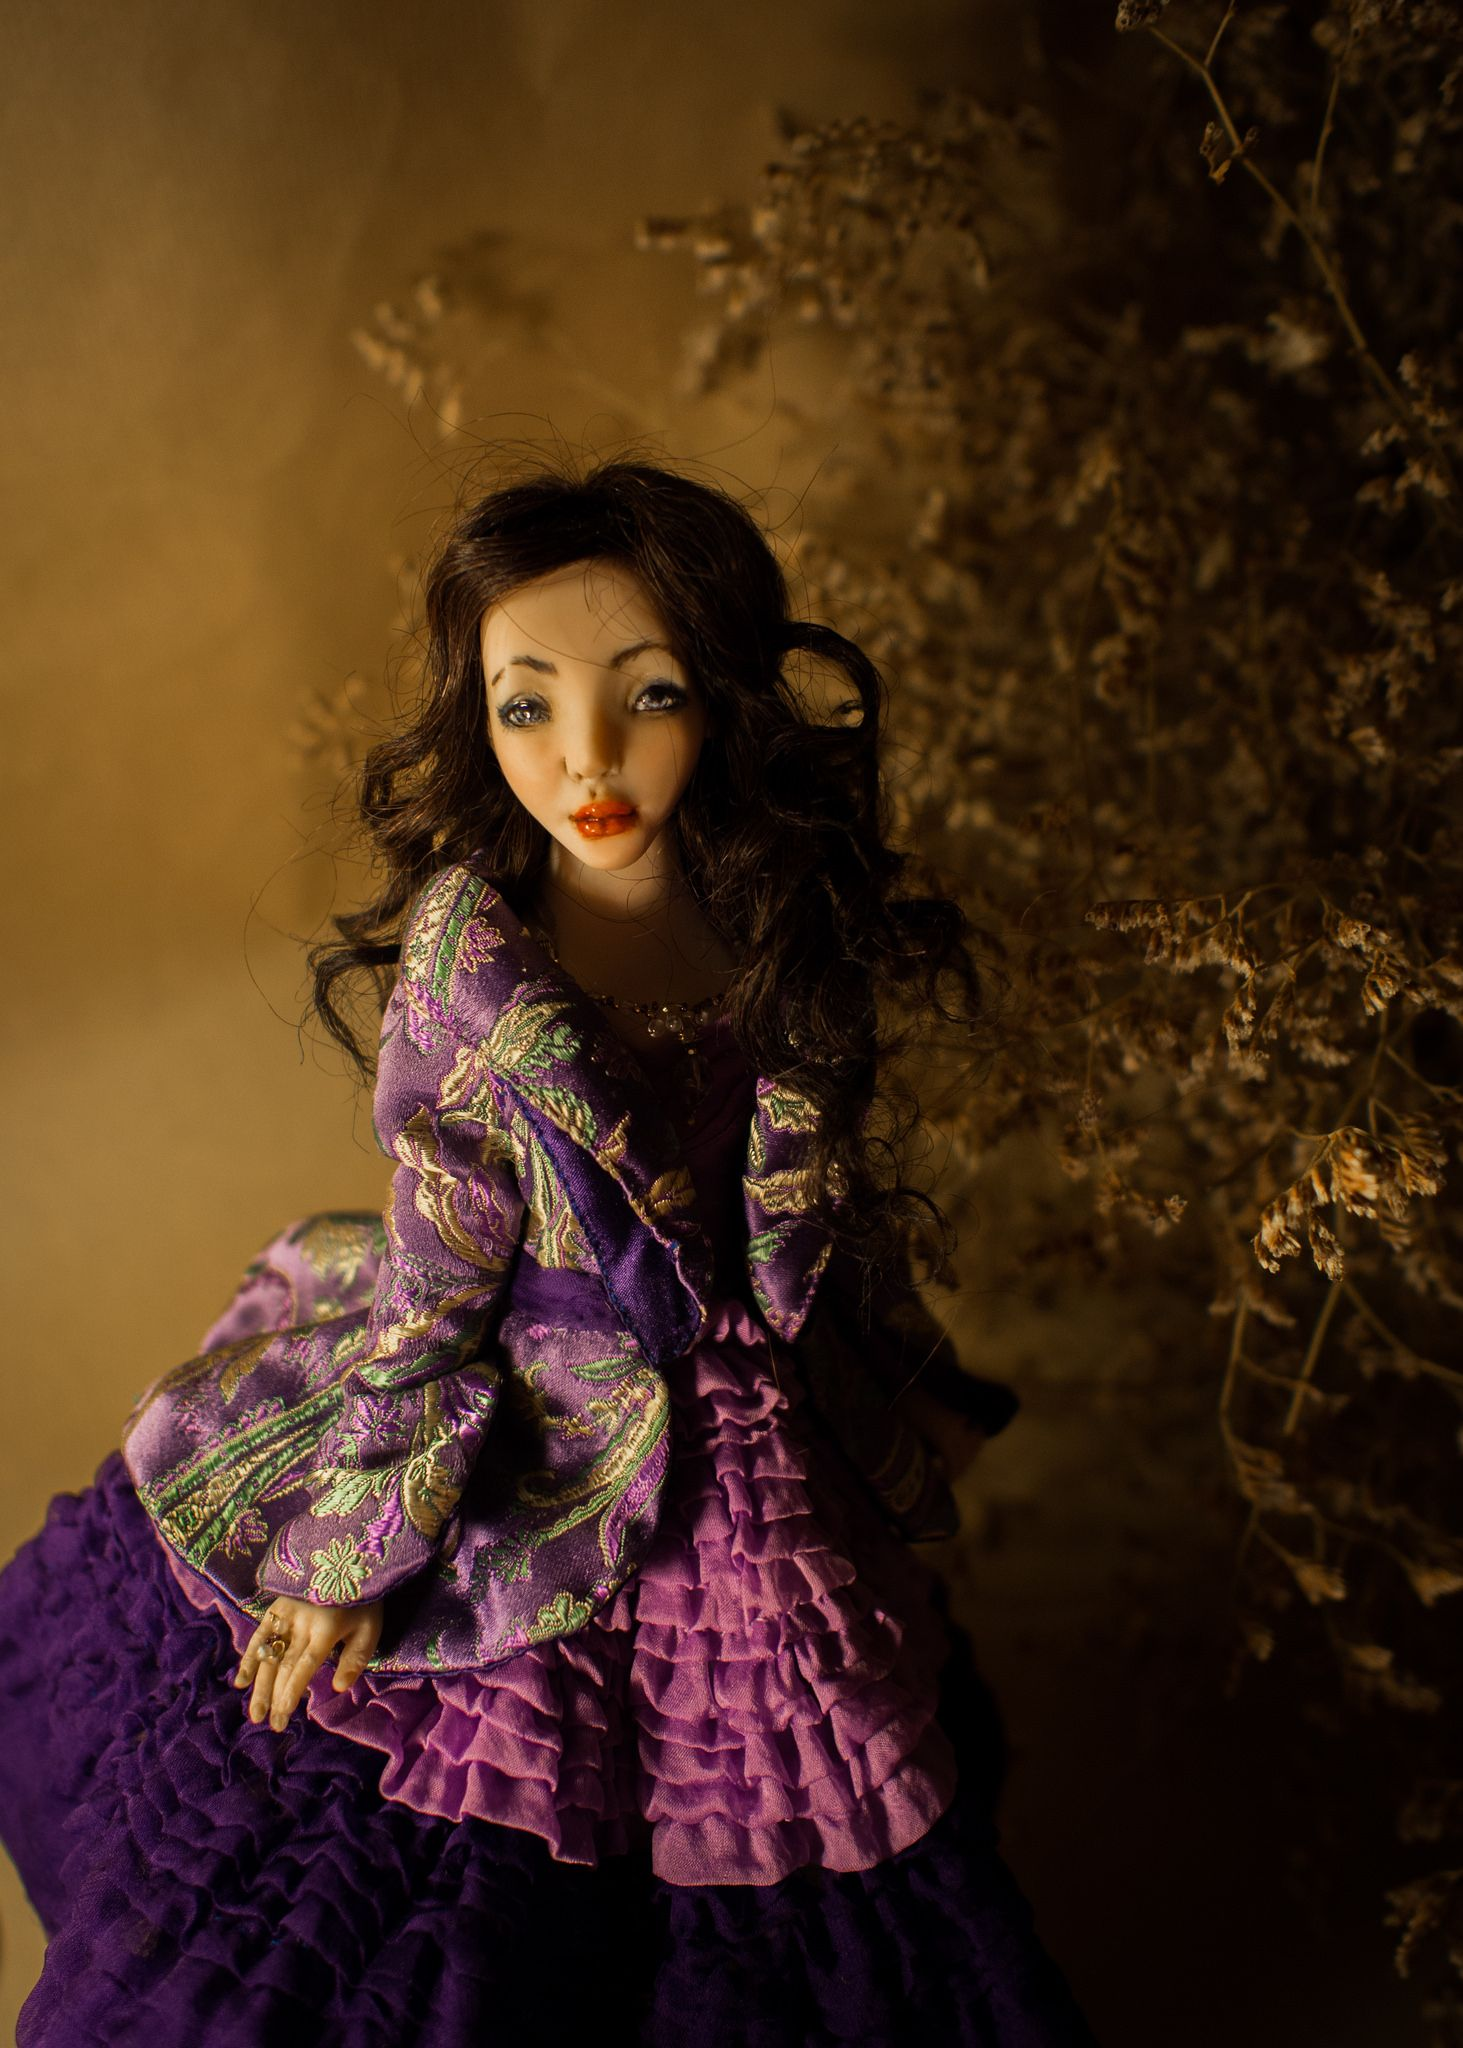 https://flic.kr/p/zsDreA | Romantic Wonders Dolls | Handmade Ooak Doll